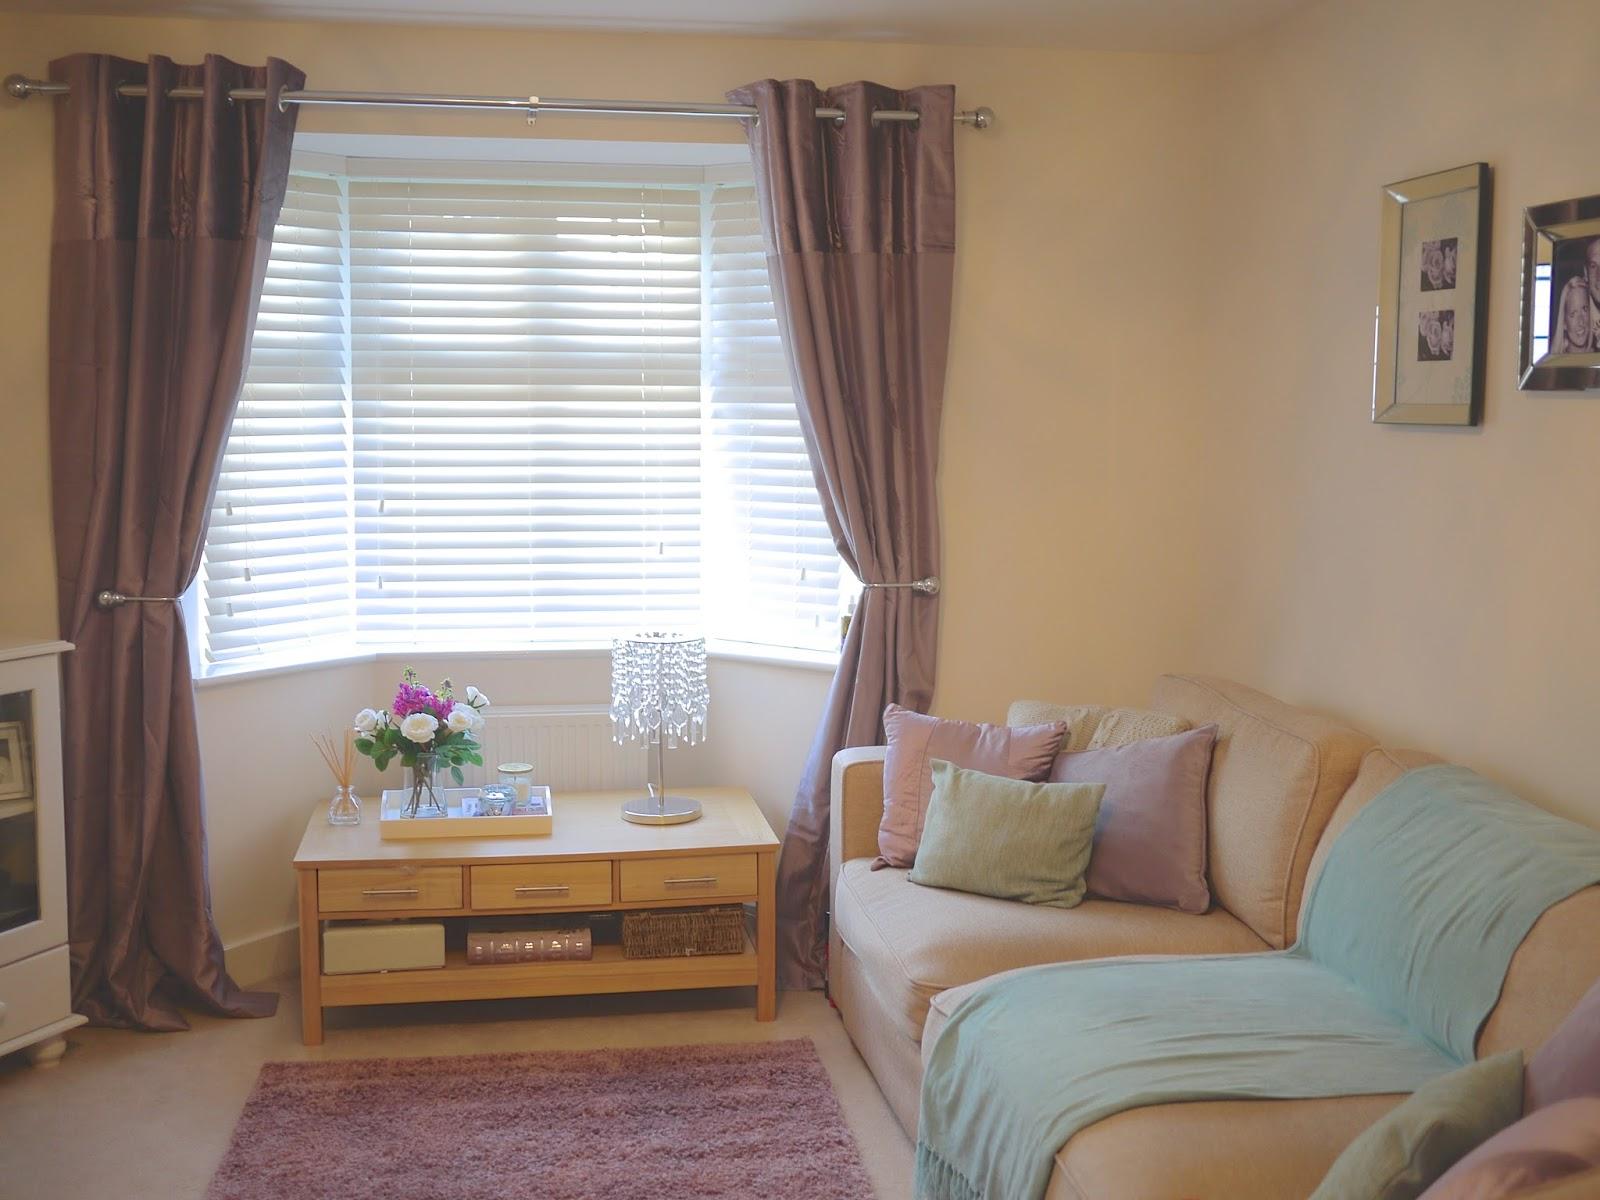 Next Home Living Room Accessories Light Gray Set Update Bella Coco By Sarah Jayne Curtains In Mauve